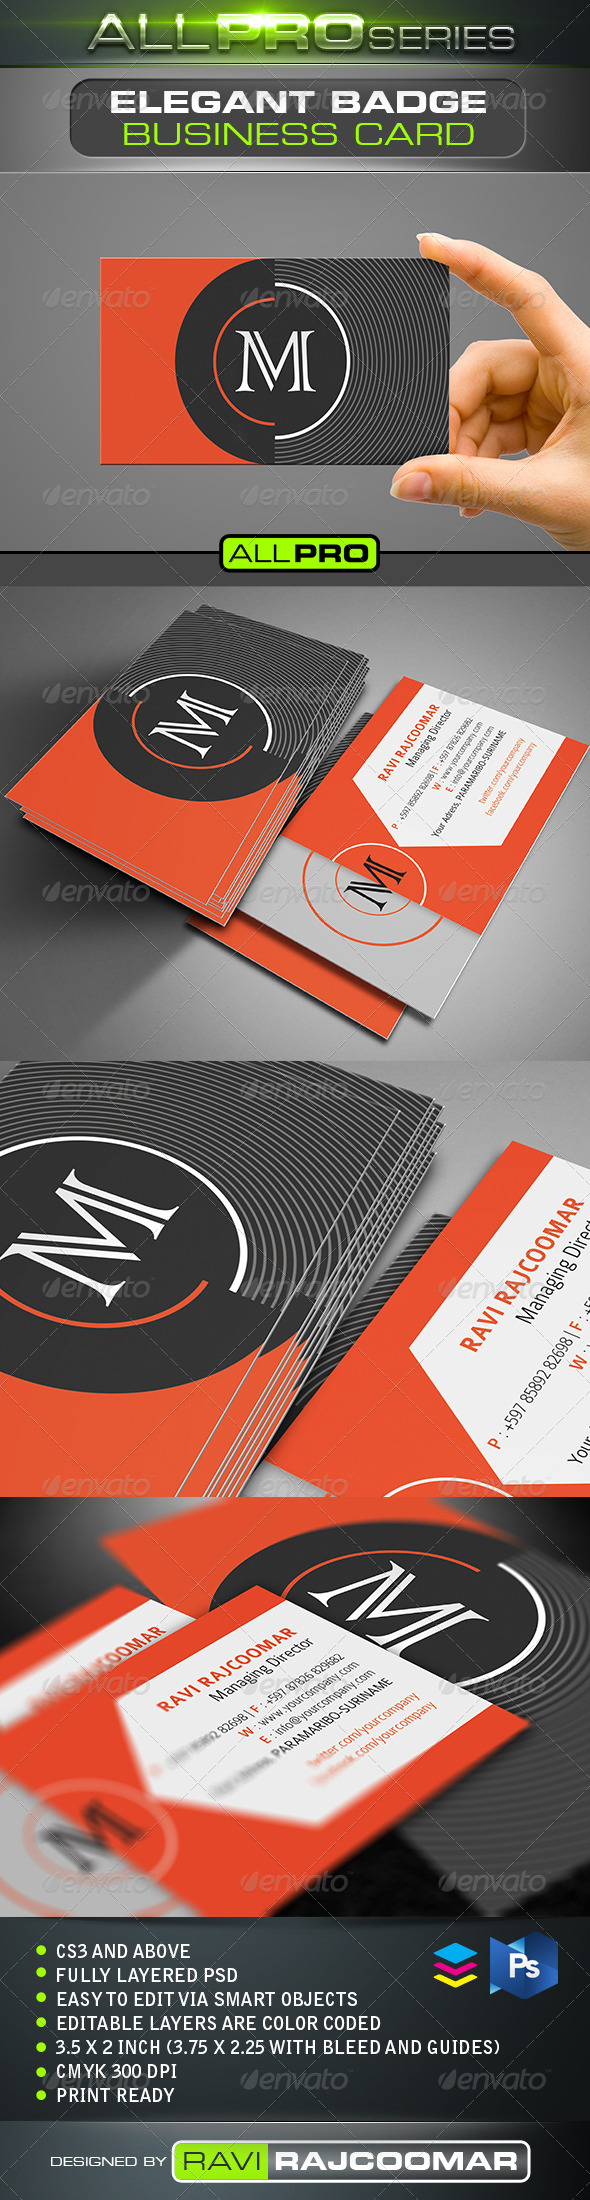 GraphicRiver Elegant Badge Business Card 5125885